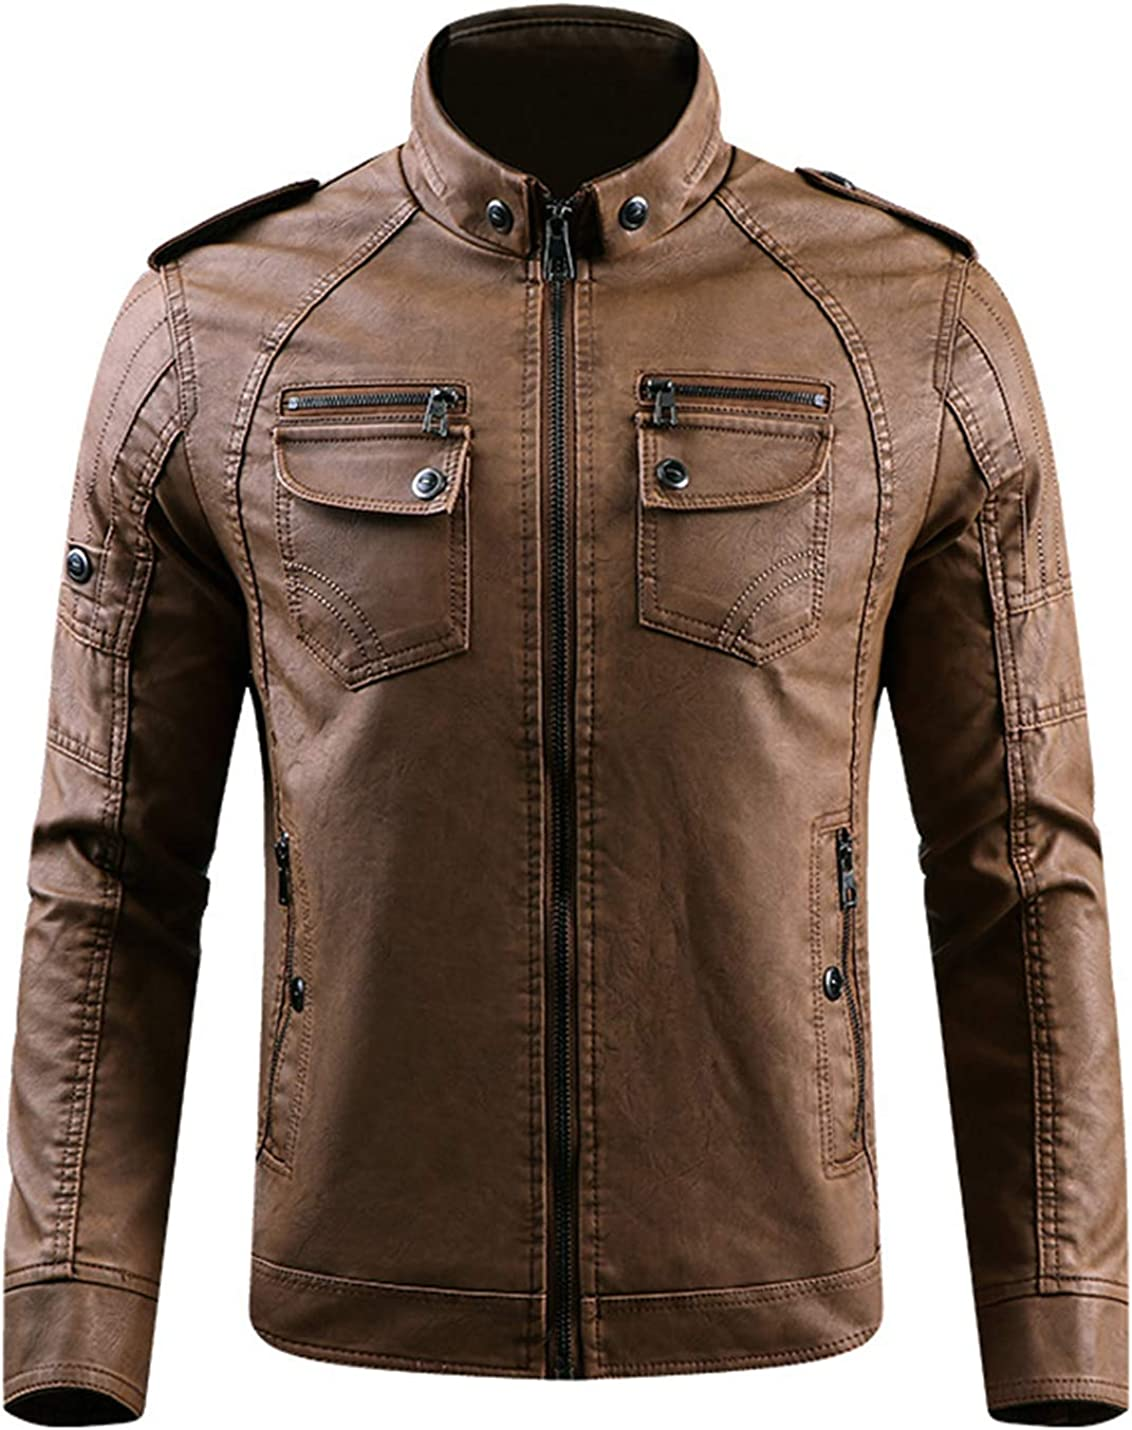 Gihuo Men's Sherpa Lined Faux Leather PU Moto Jacket